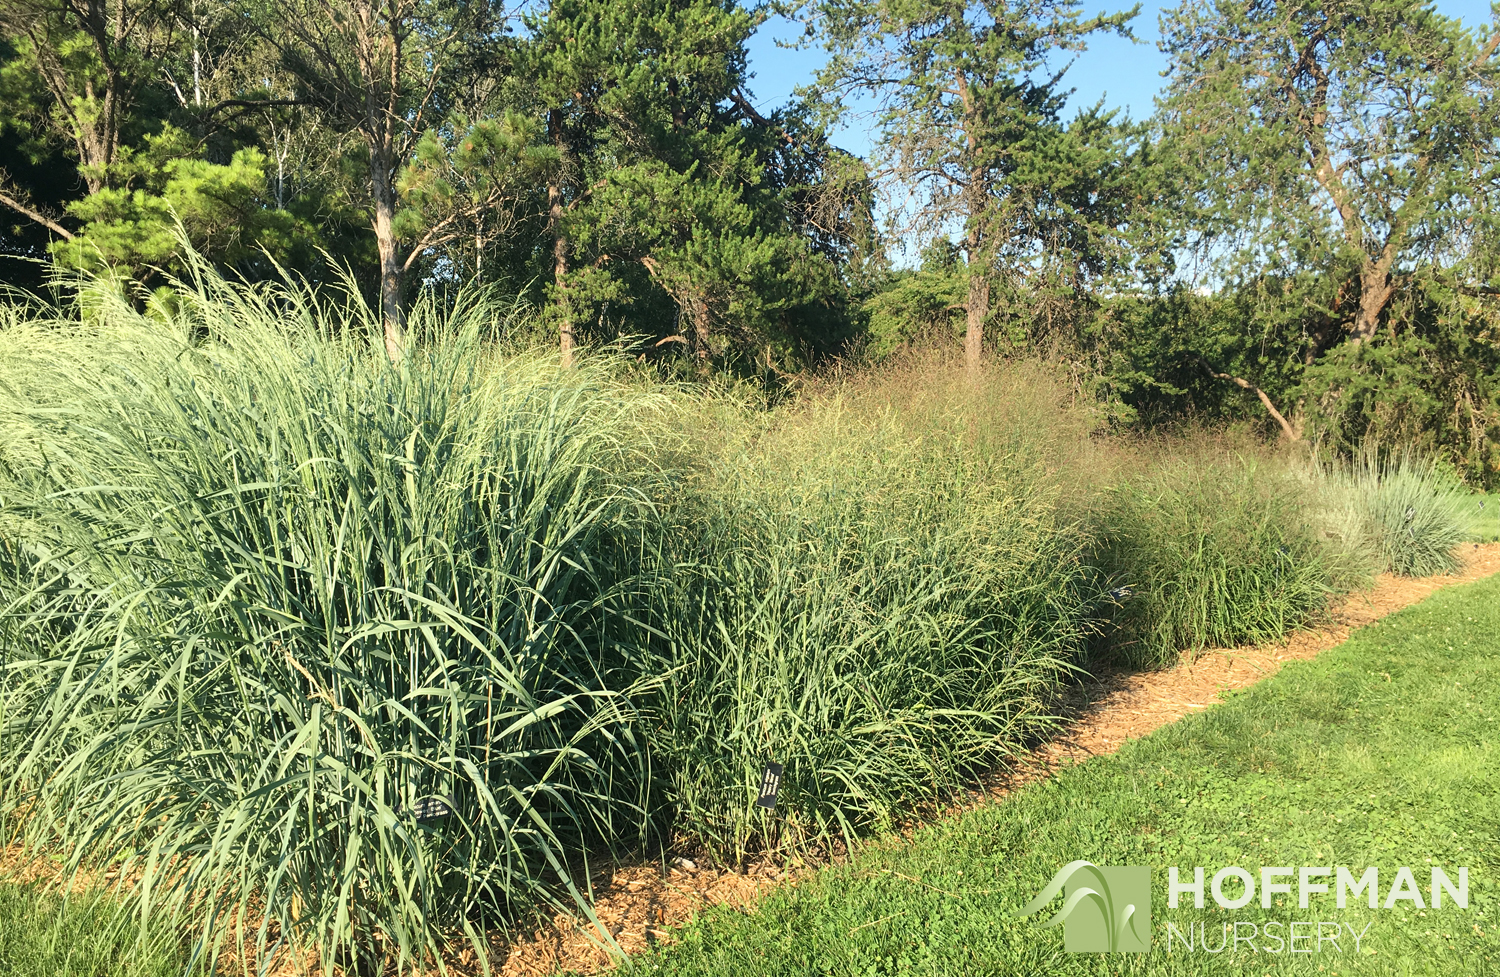 Several Switchgrass cultivars stand in a row in the area used for national grass trials.